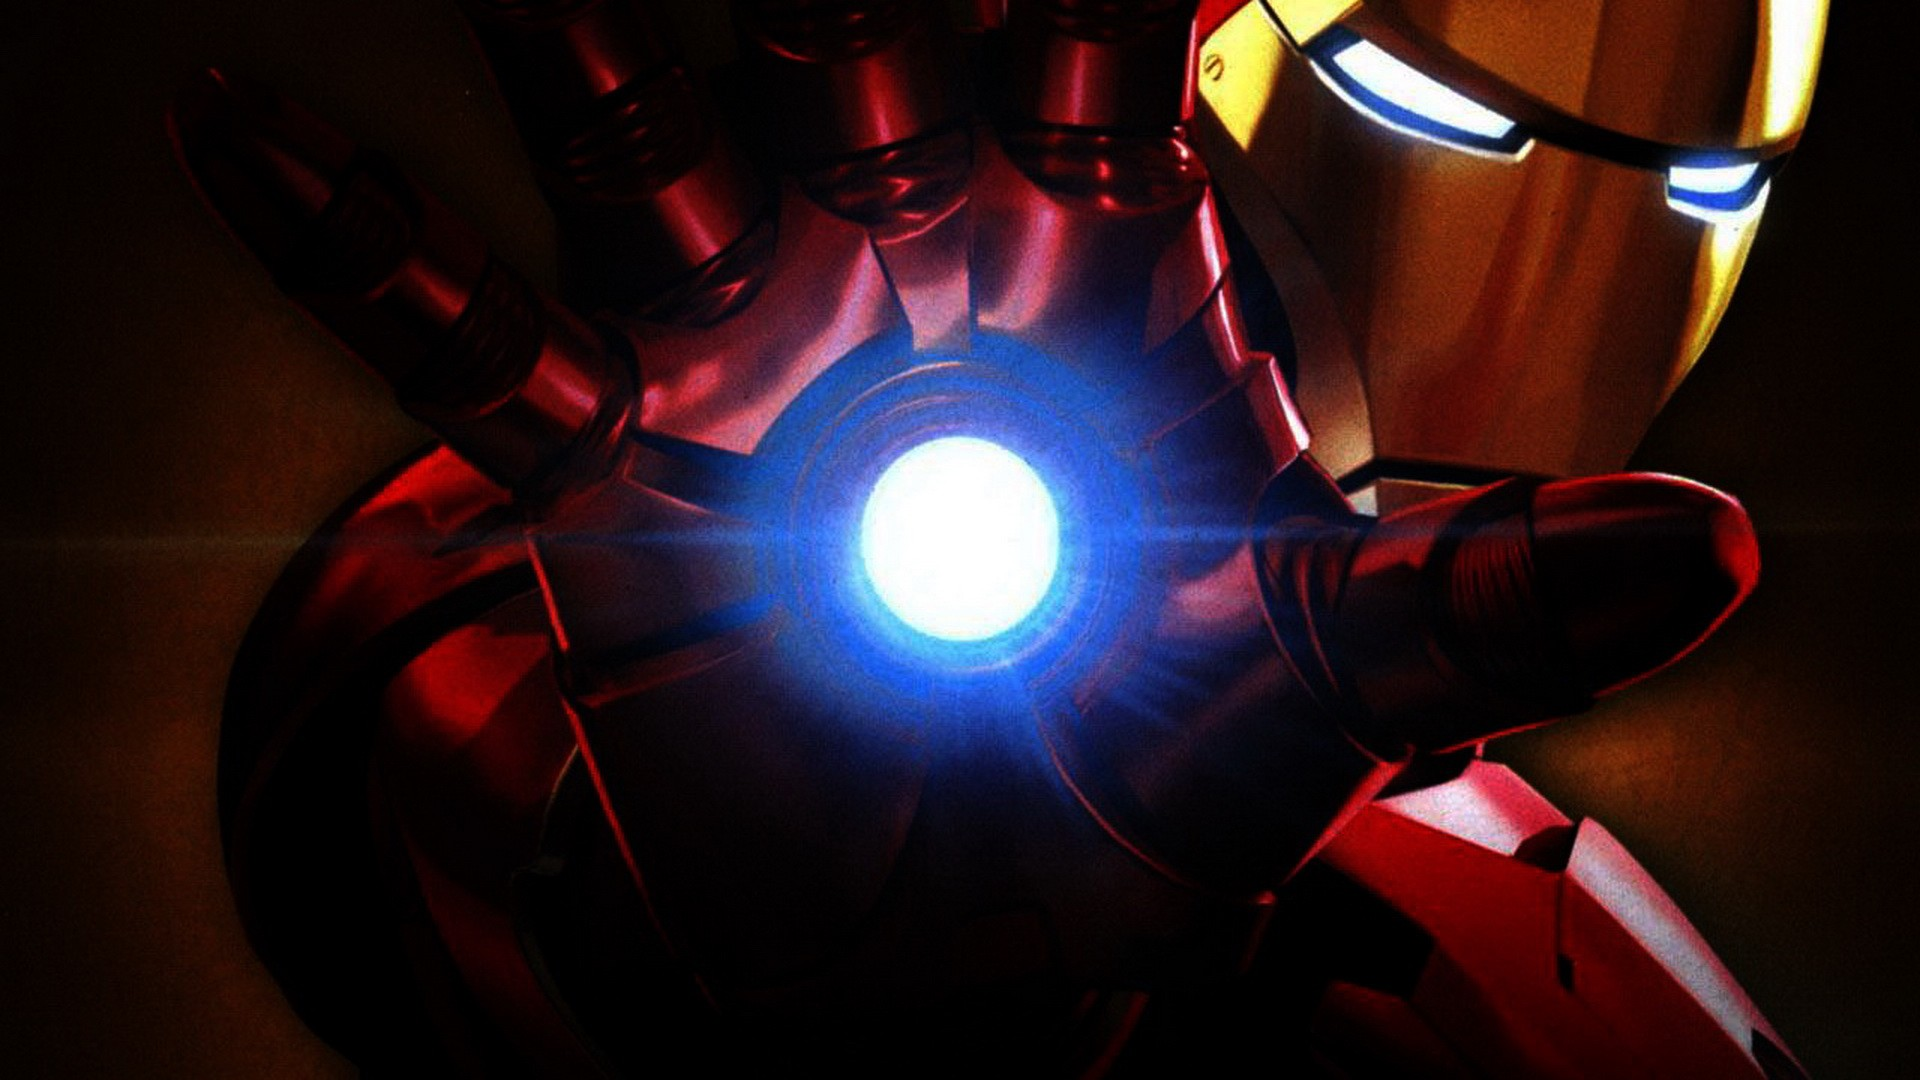 wp contentuploads201501Iron Man HD Wallpapers for Desktop 25jpg 1920x1080